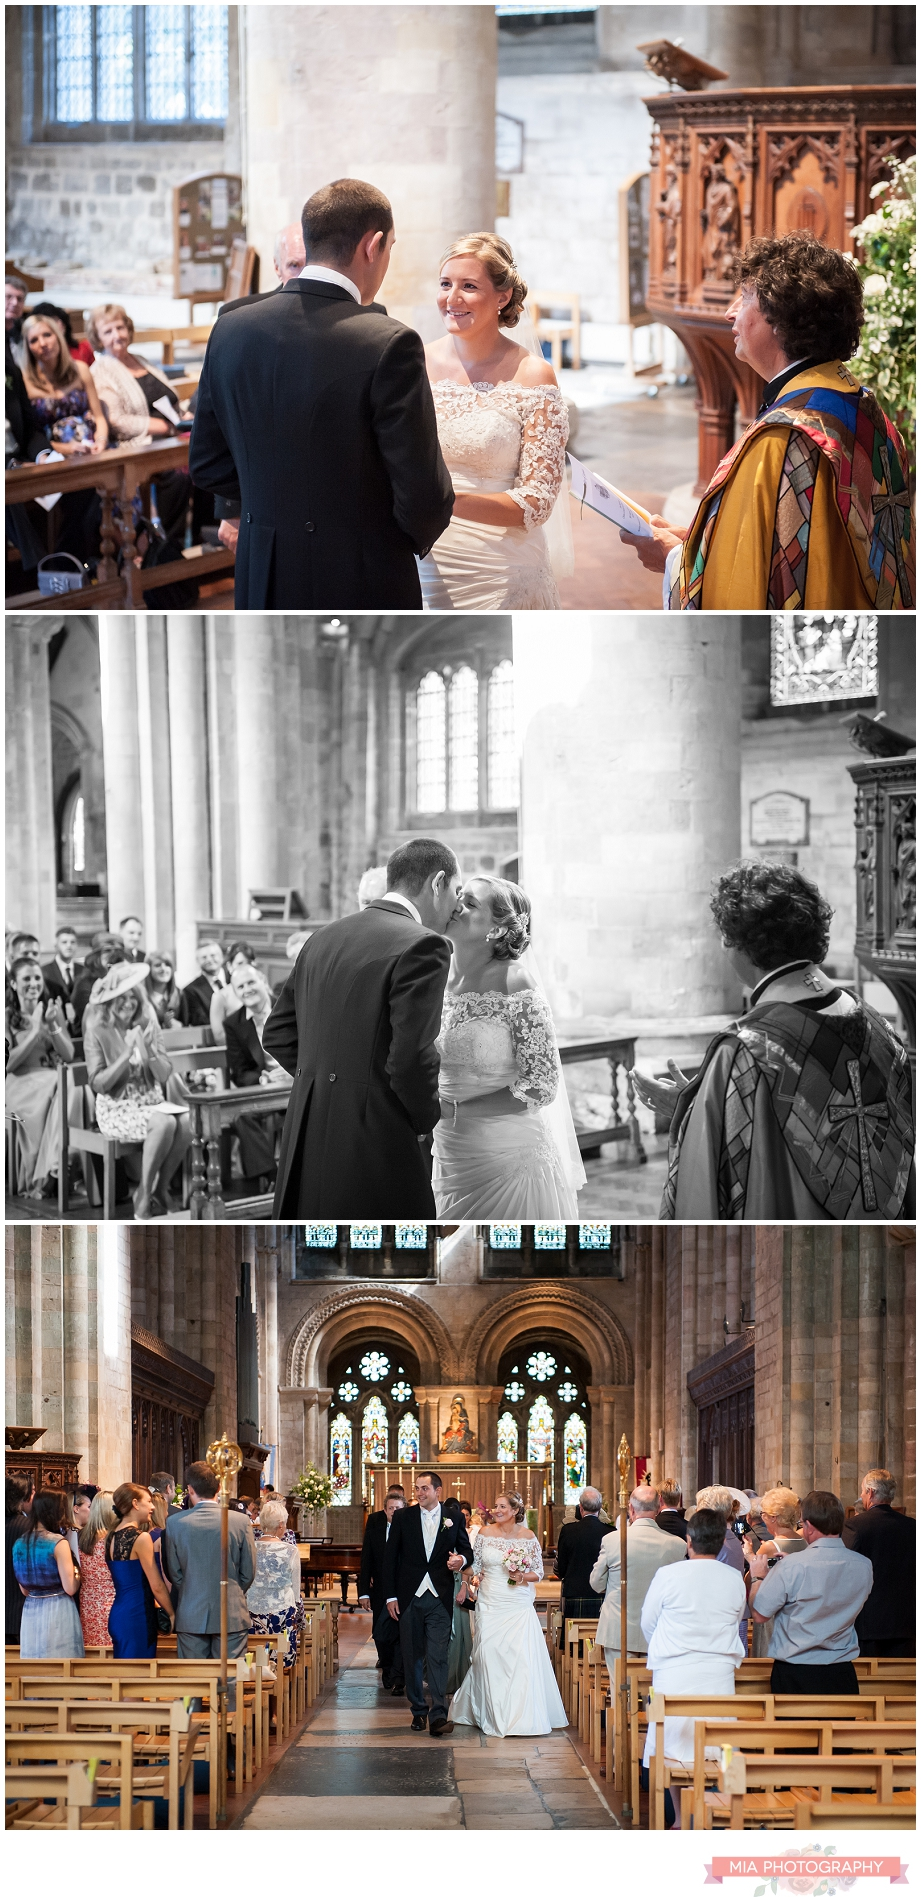 Wedding photography in Romsey Abbey, hampshire